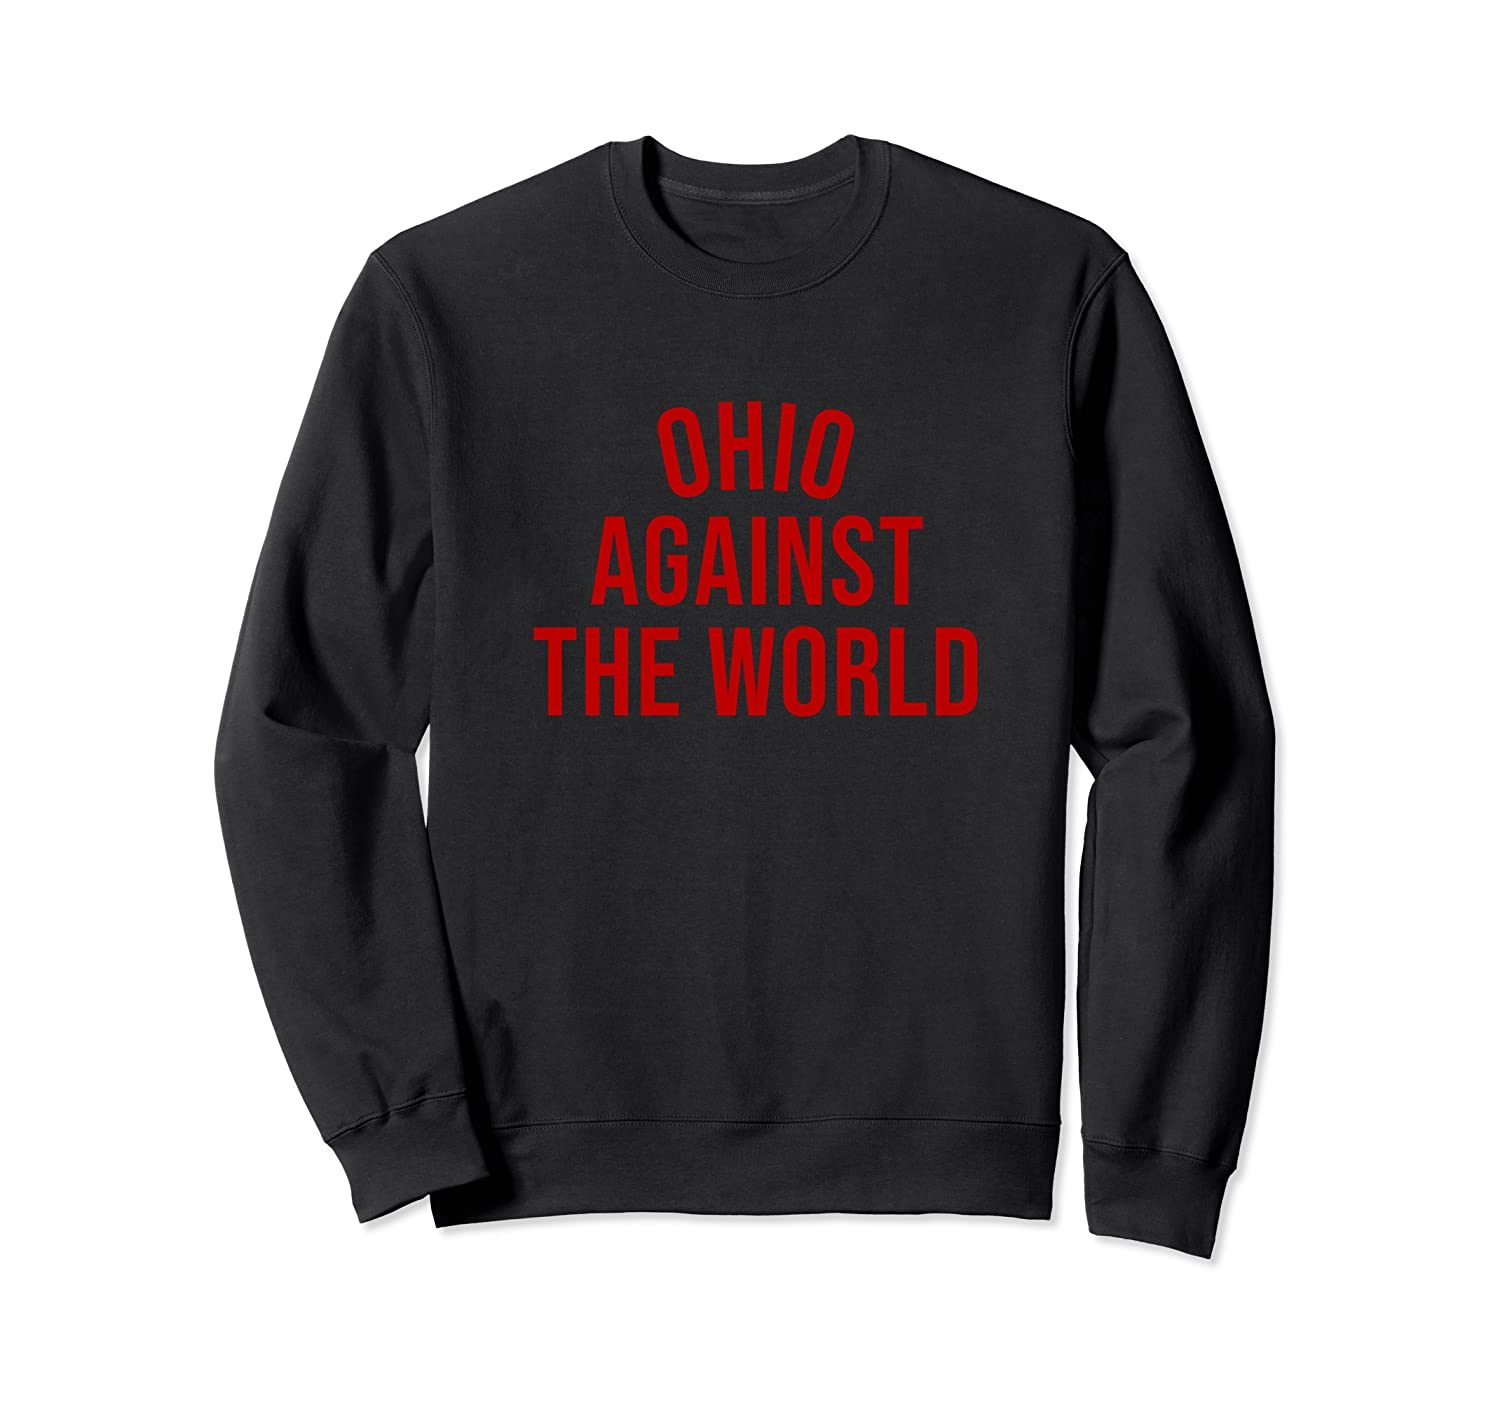 Ohio-Against-The-World - Special Edition Red Text on Black Sweatshirt-TH